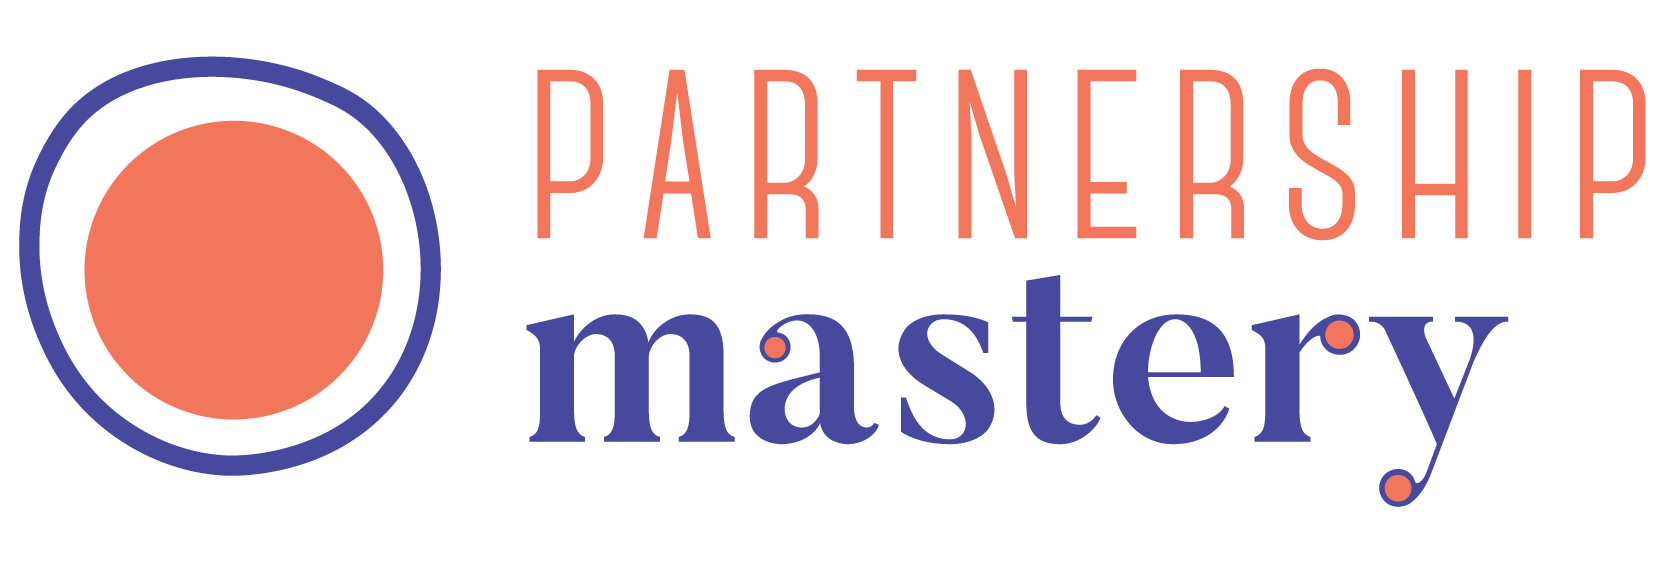 Partnership Mastery | Online program to build your business through partnerships